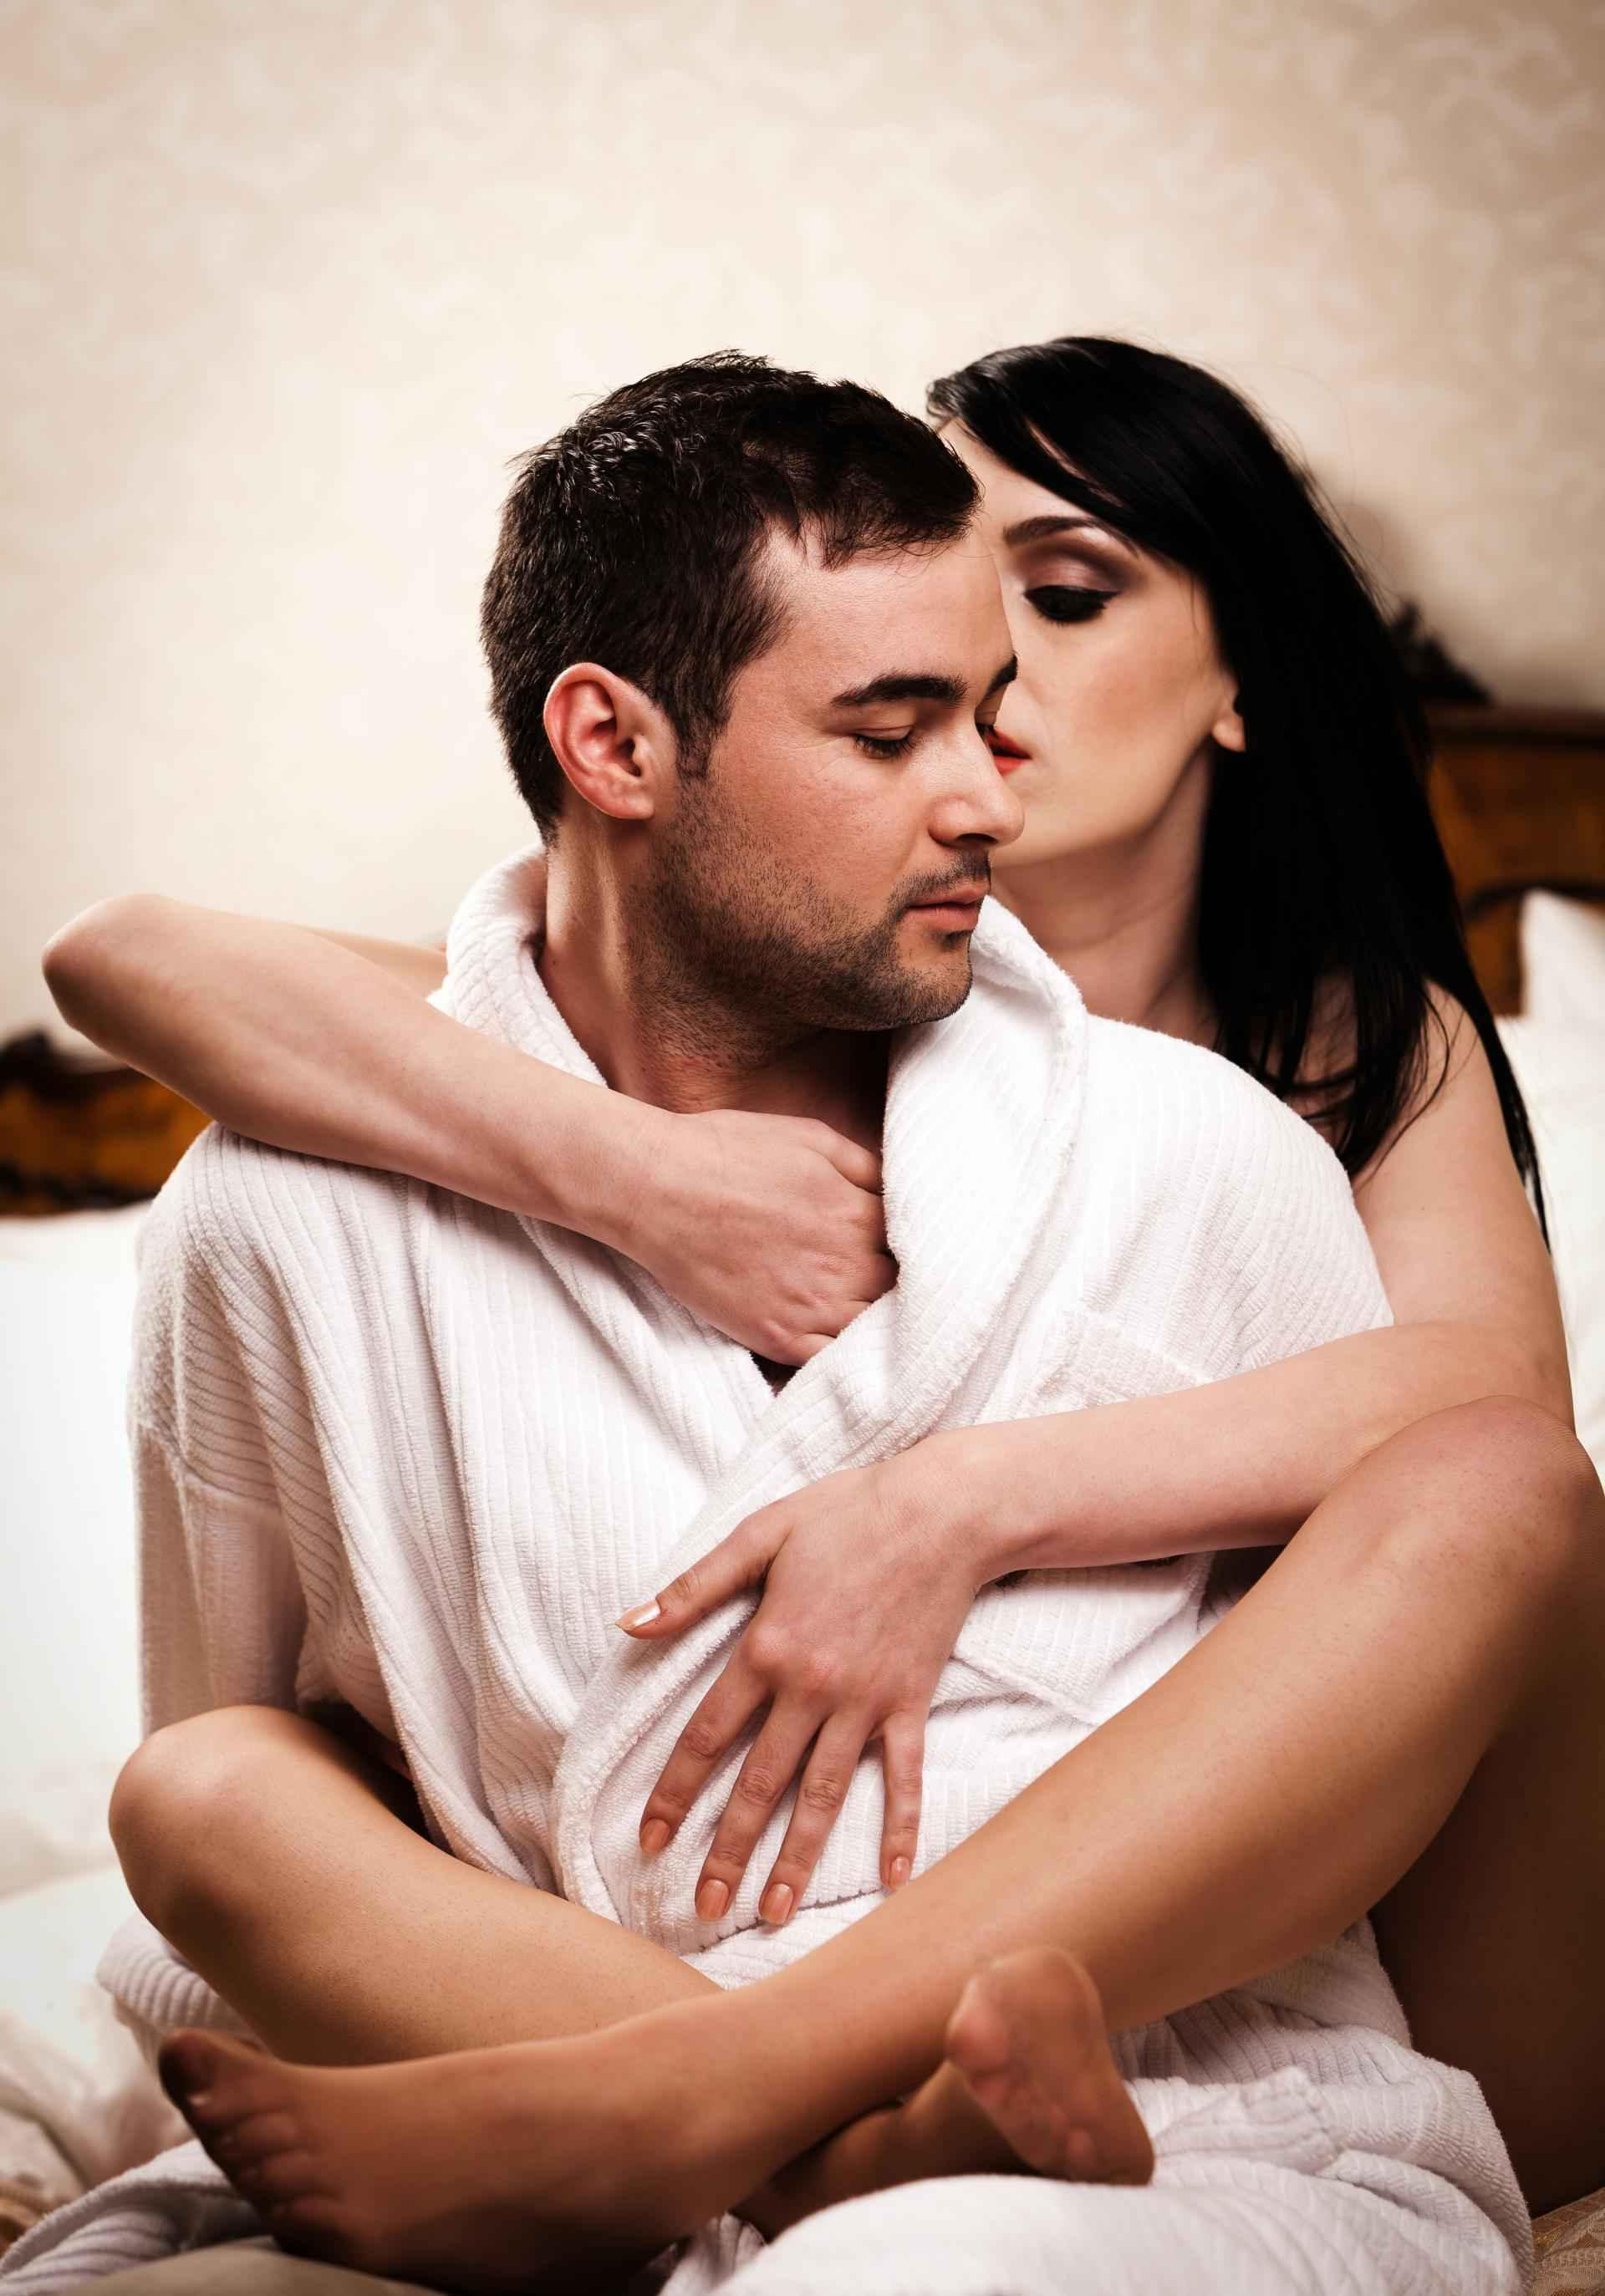 Take Your Sex Life to the Next Level with Dirty Talk SDC.com